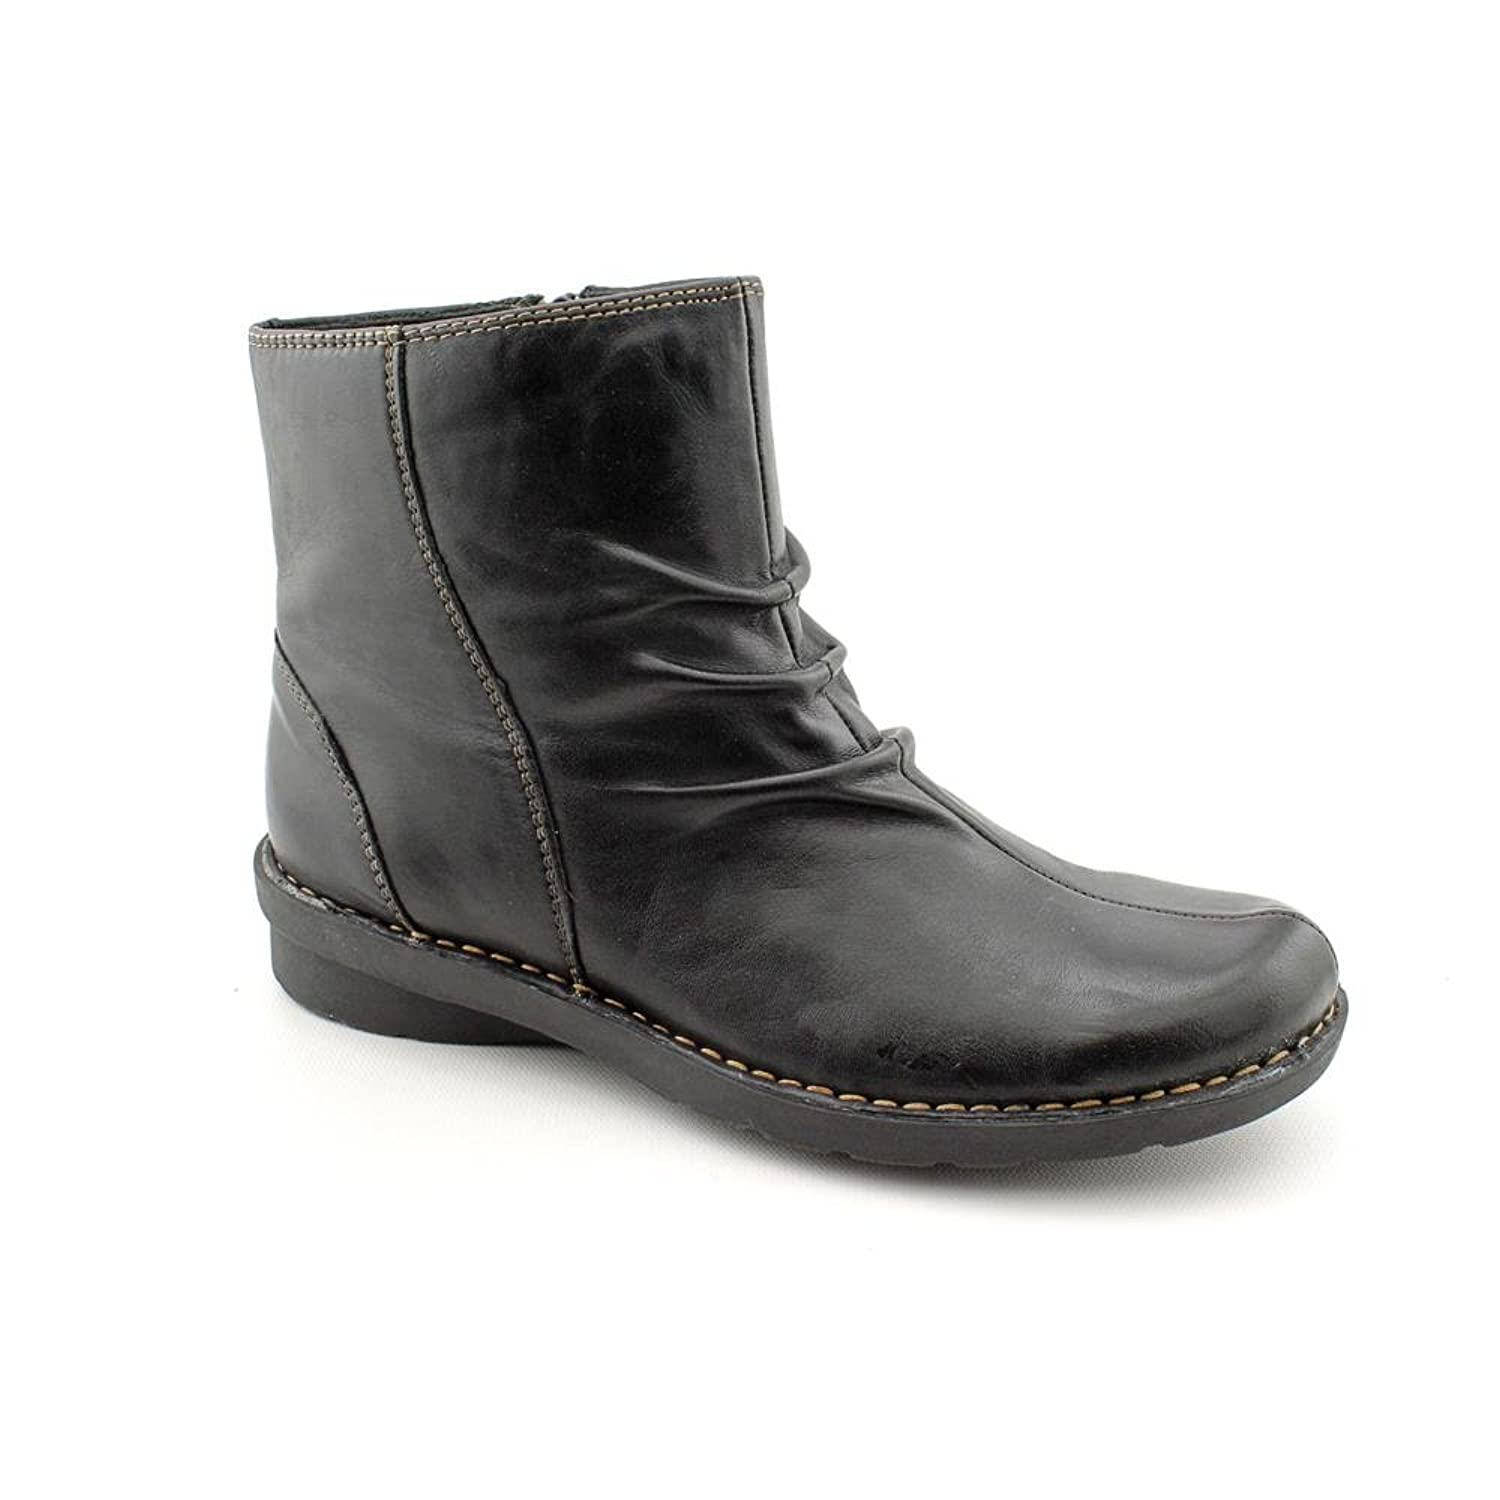 Shop for sale women's boots at ECCO® official online store. Sale and clearance on women's boots, black boots, leather boots, chelsea boots, work boots .